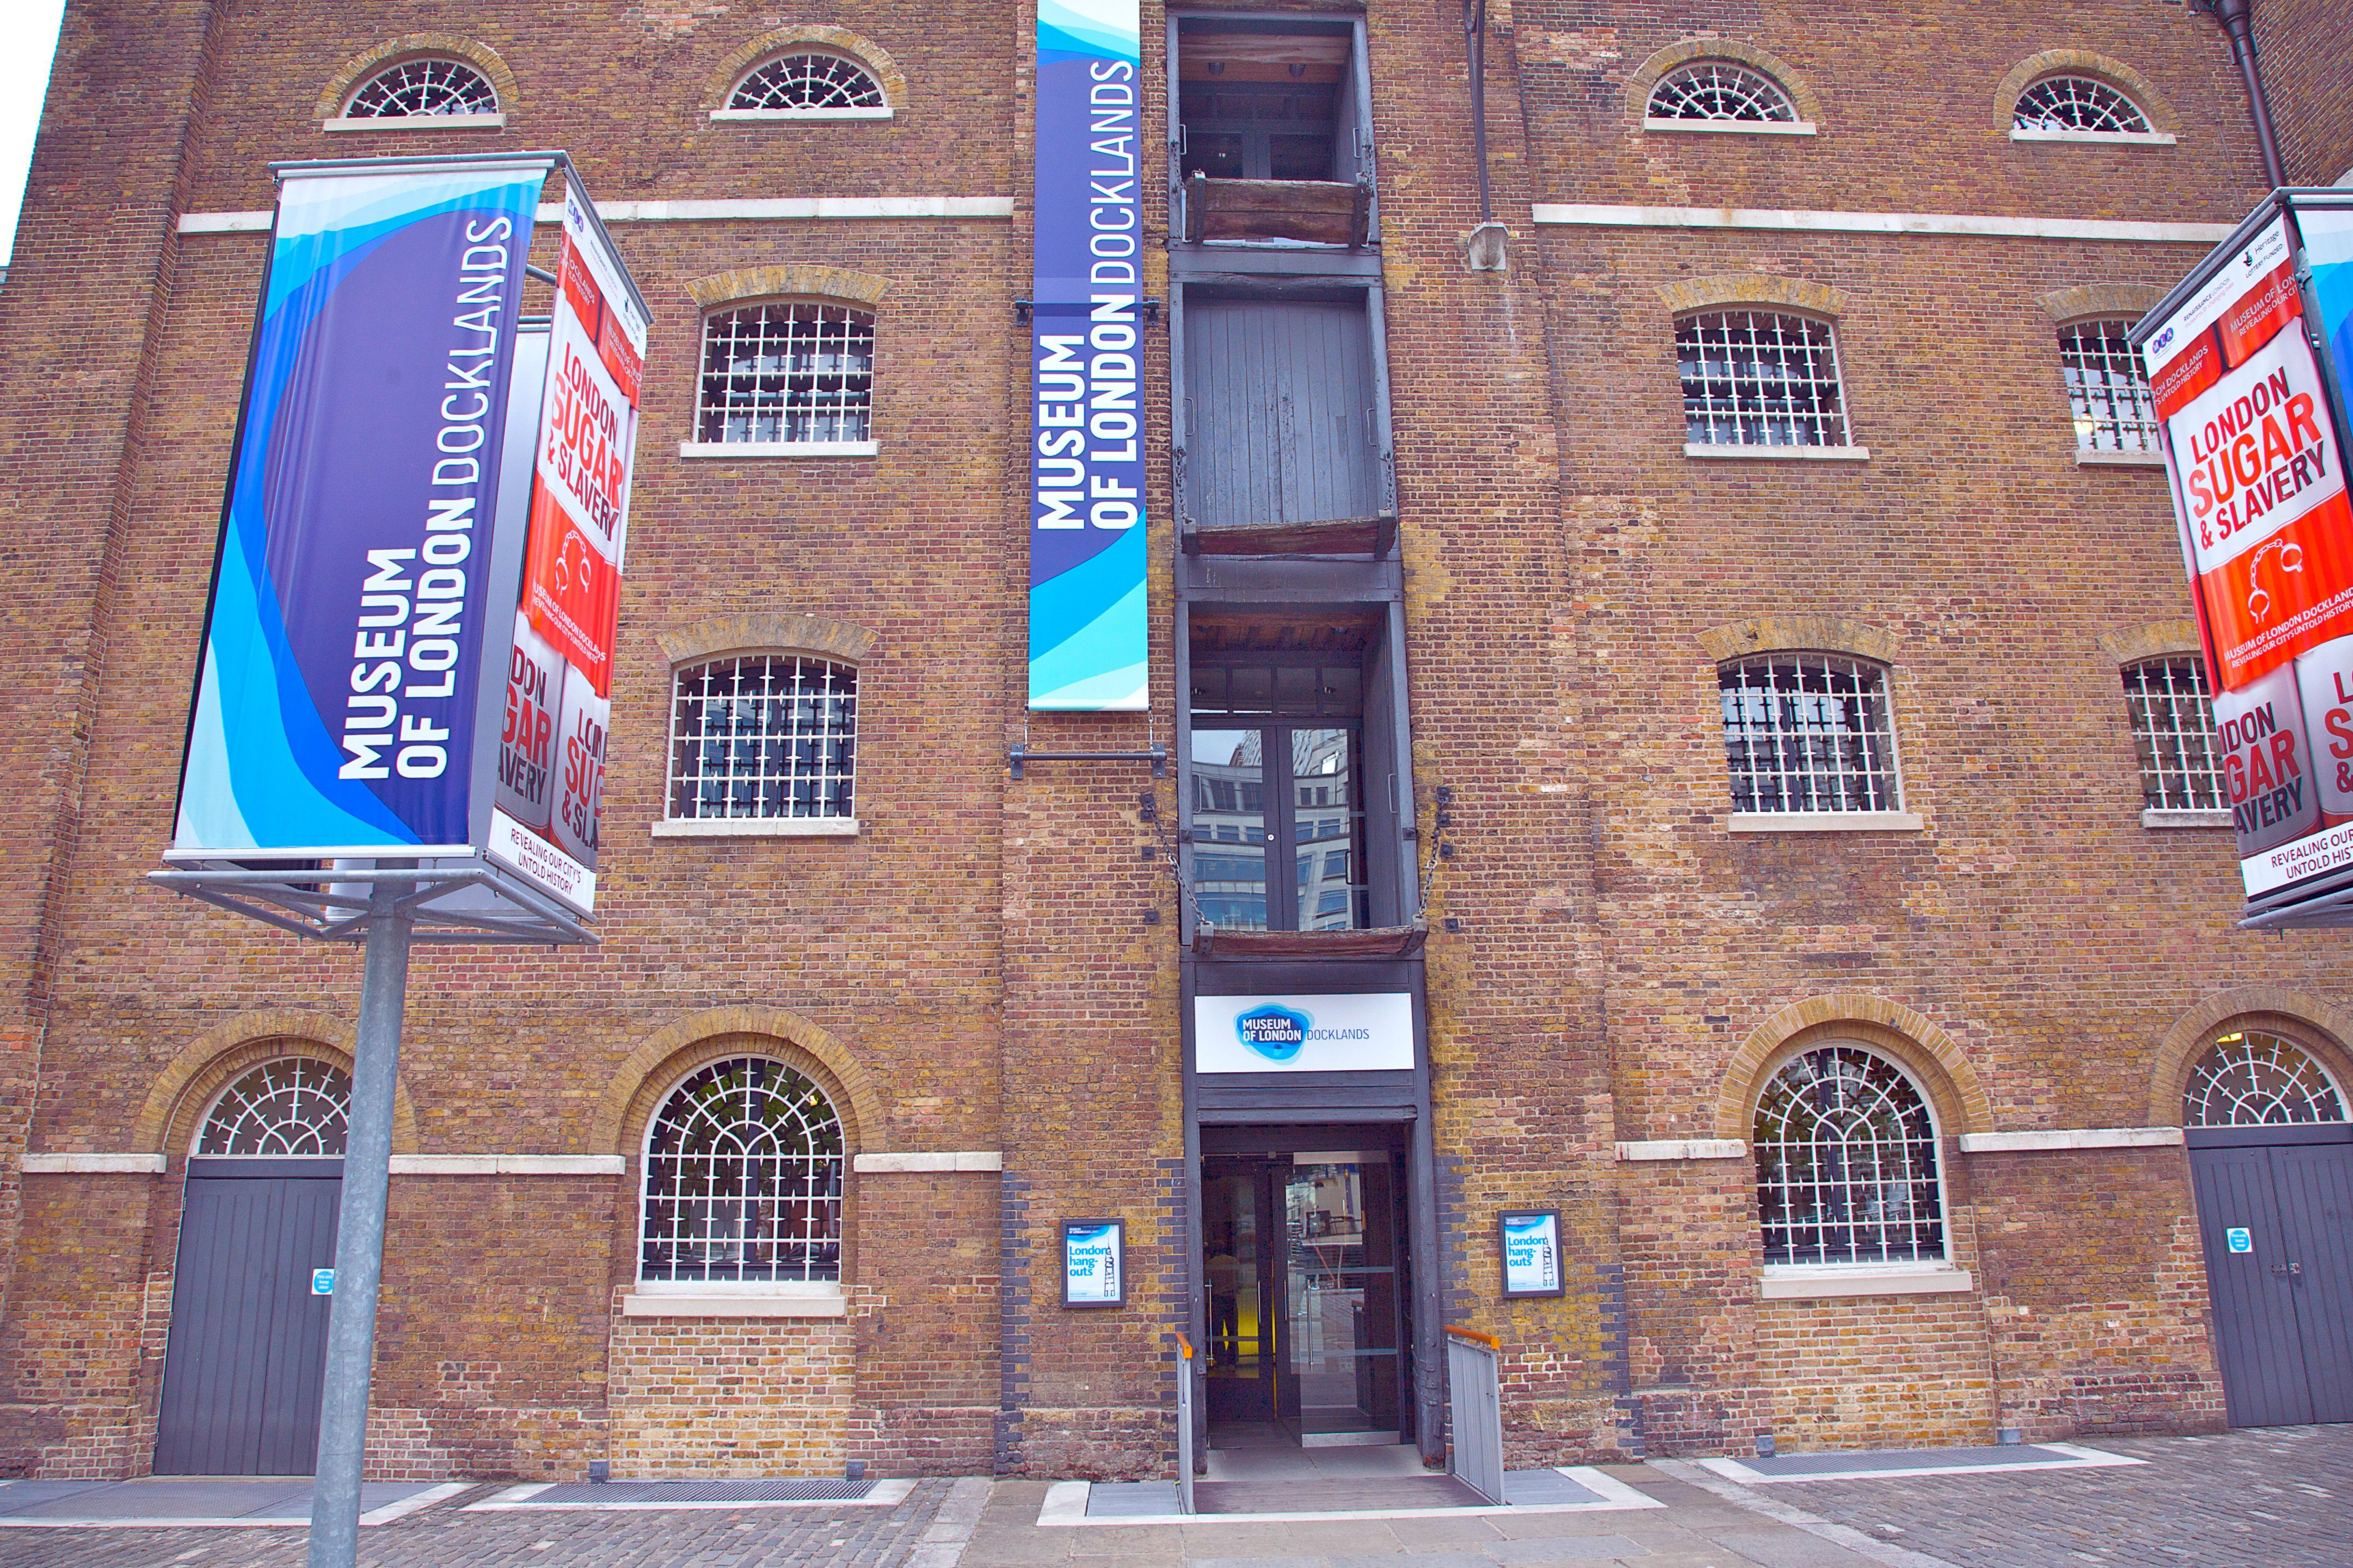 D Exhibition Docklands : Docklands museum of london facts and ideas